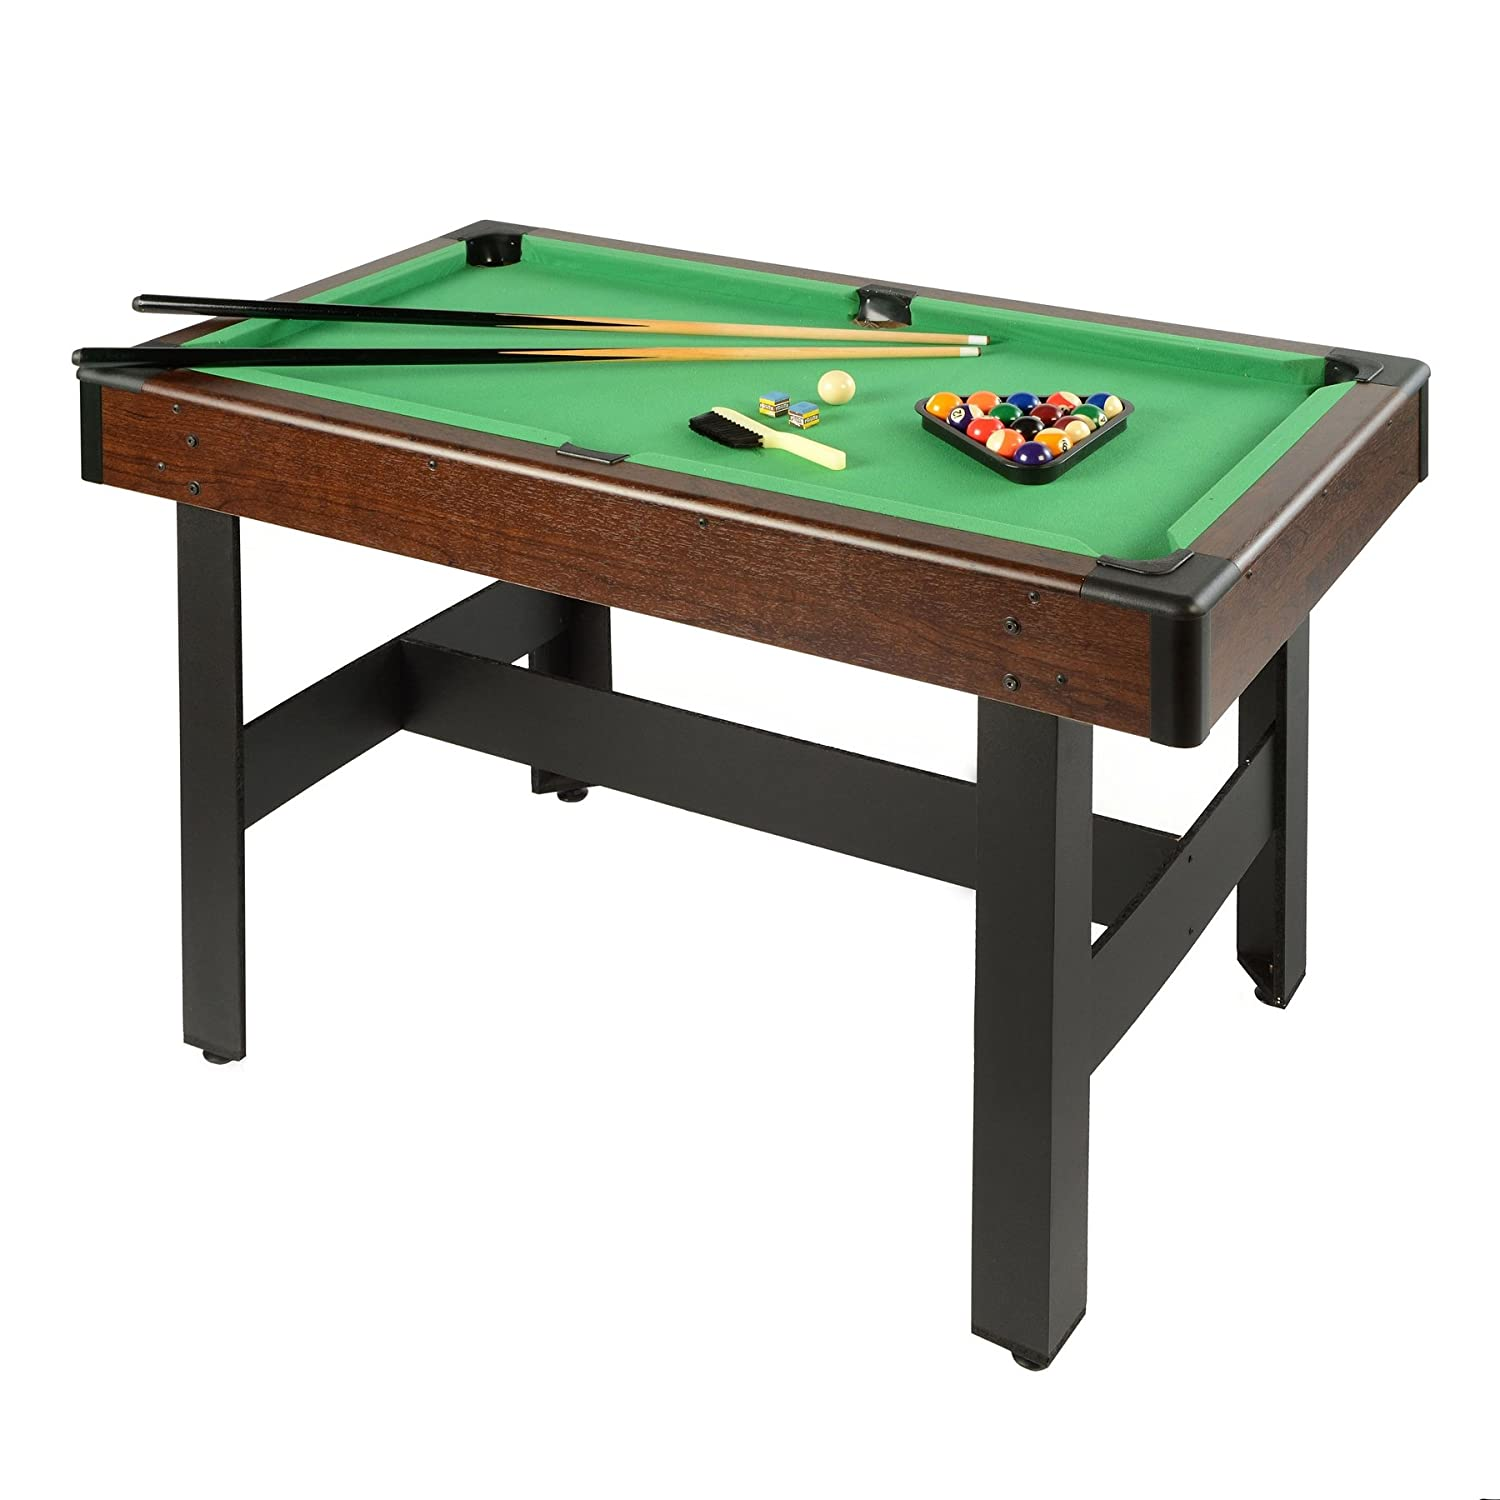 Best Small Pool Tables Of - Billiard table and accessories